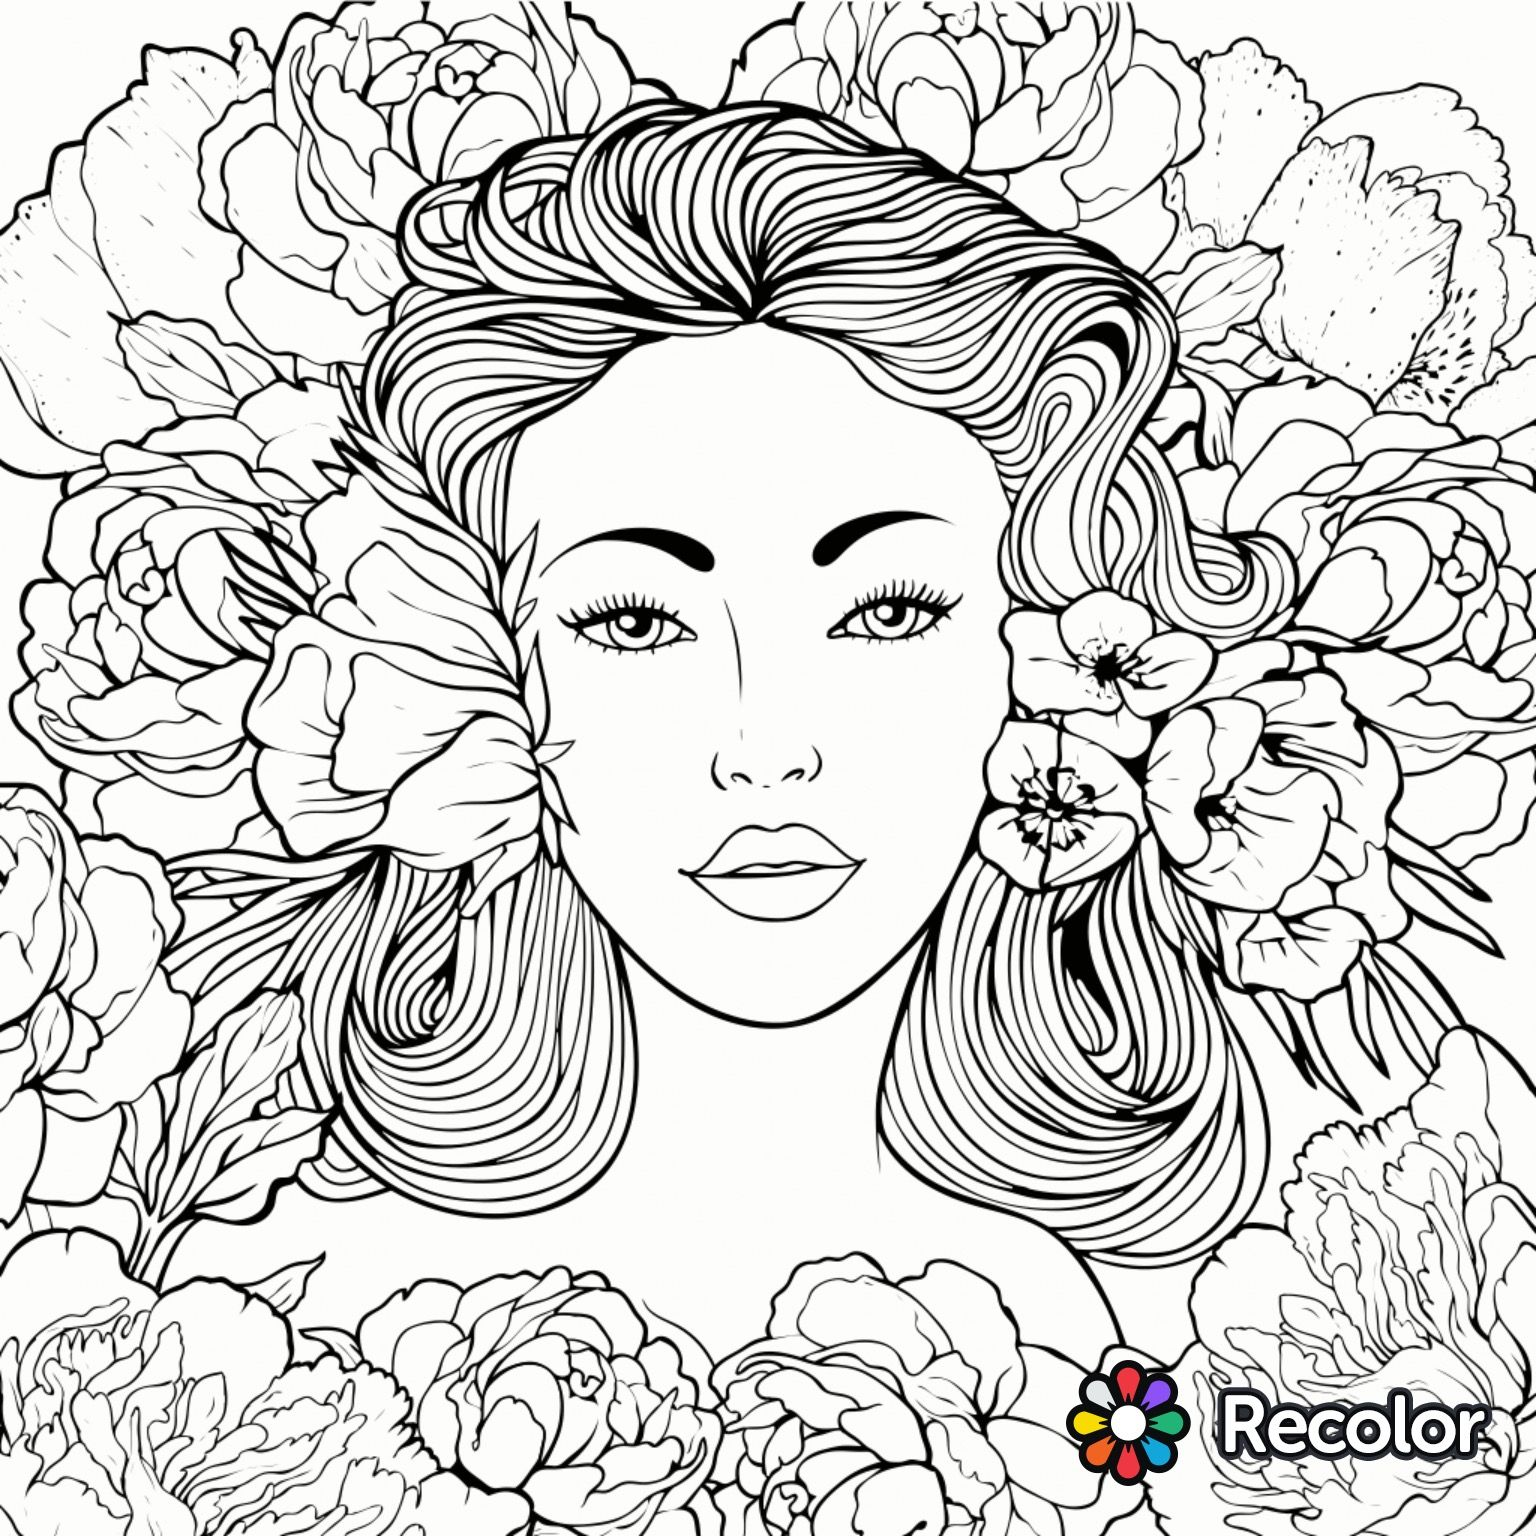 1536x1536 Beauty Coloring Page Recolor App Beautiful Women Coloring